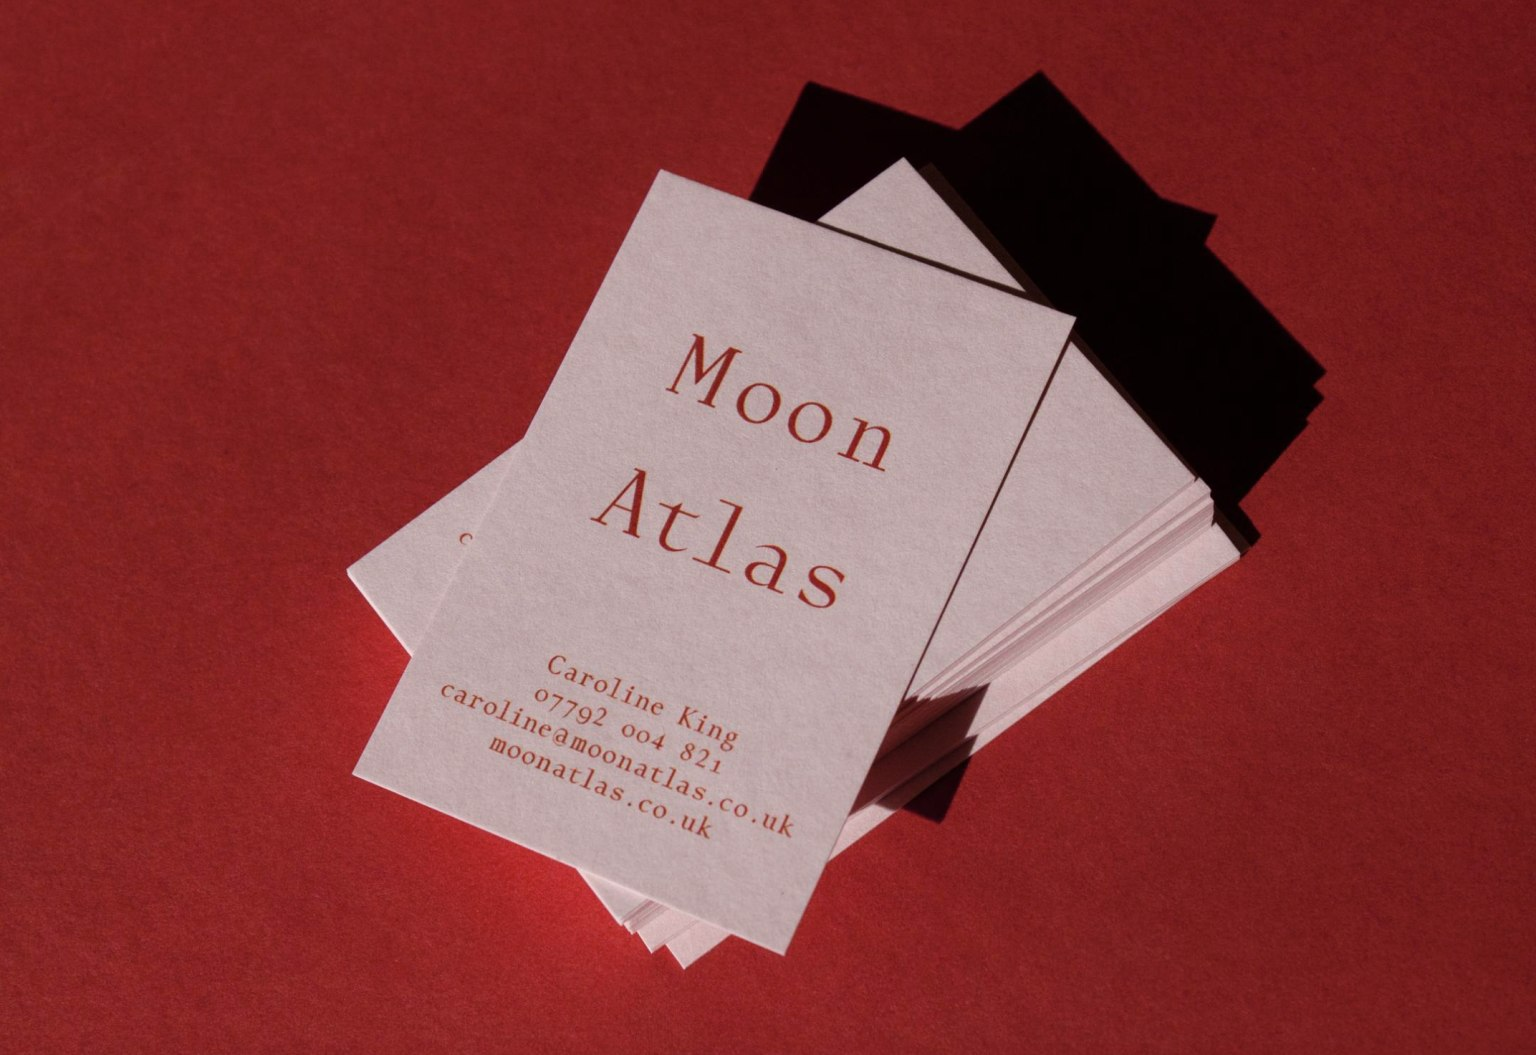 Moon Atlas